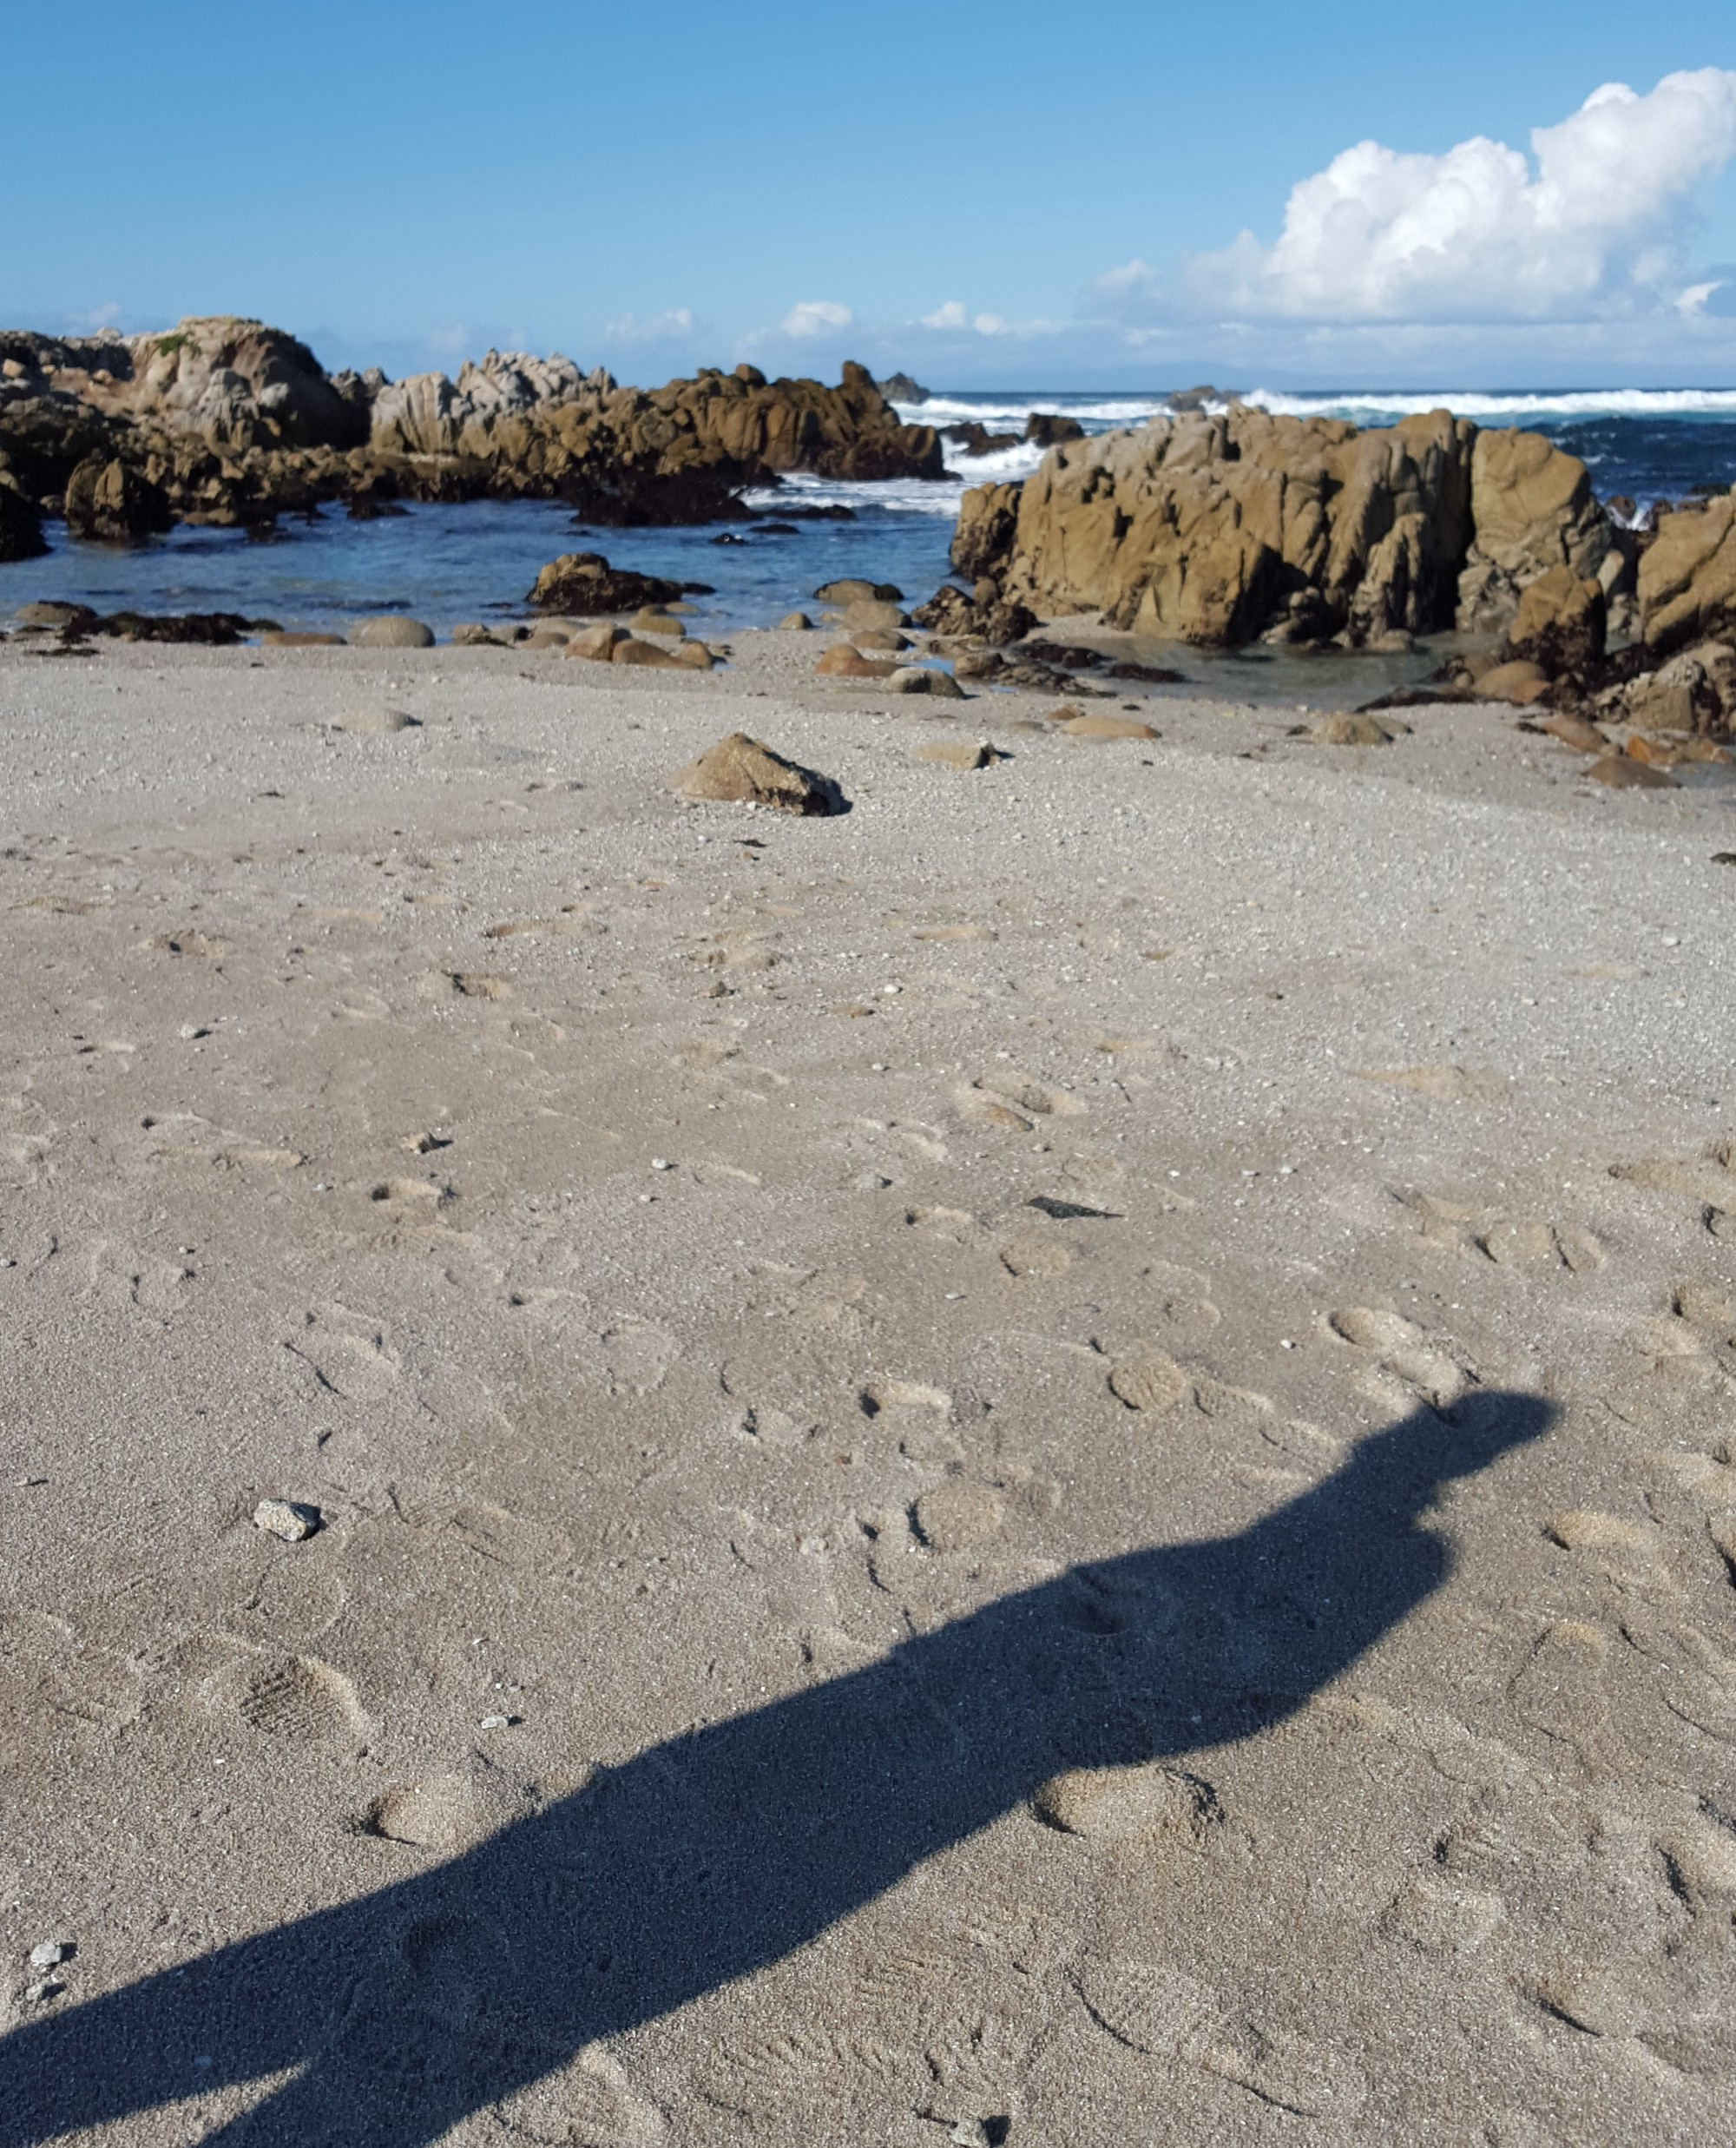 A rocky California shoreline. A shadow of a man appears in the sand in the foreground.